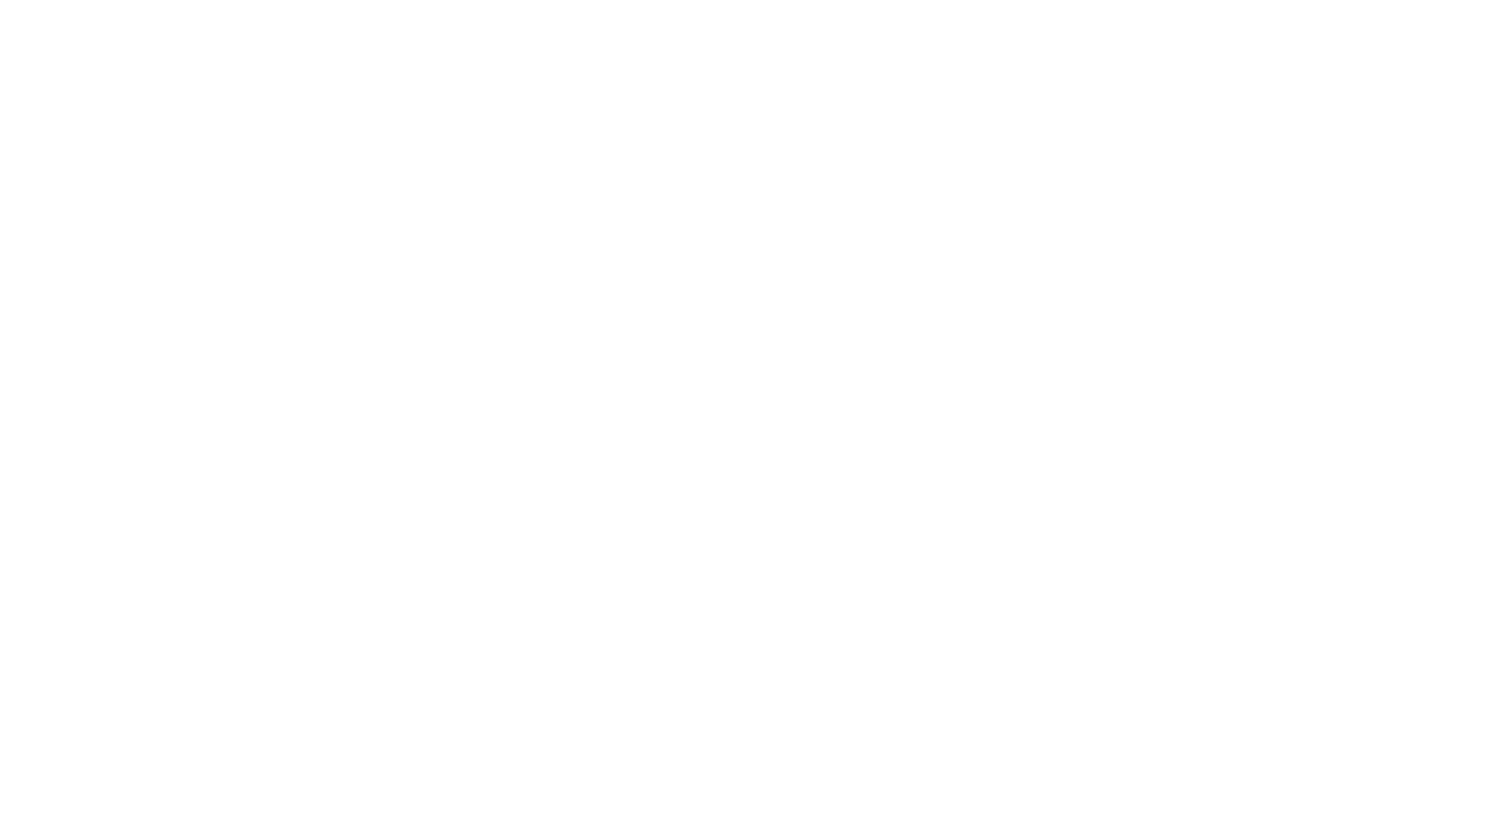 THE SOAP FOR YOU